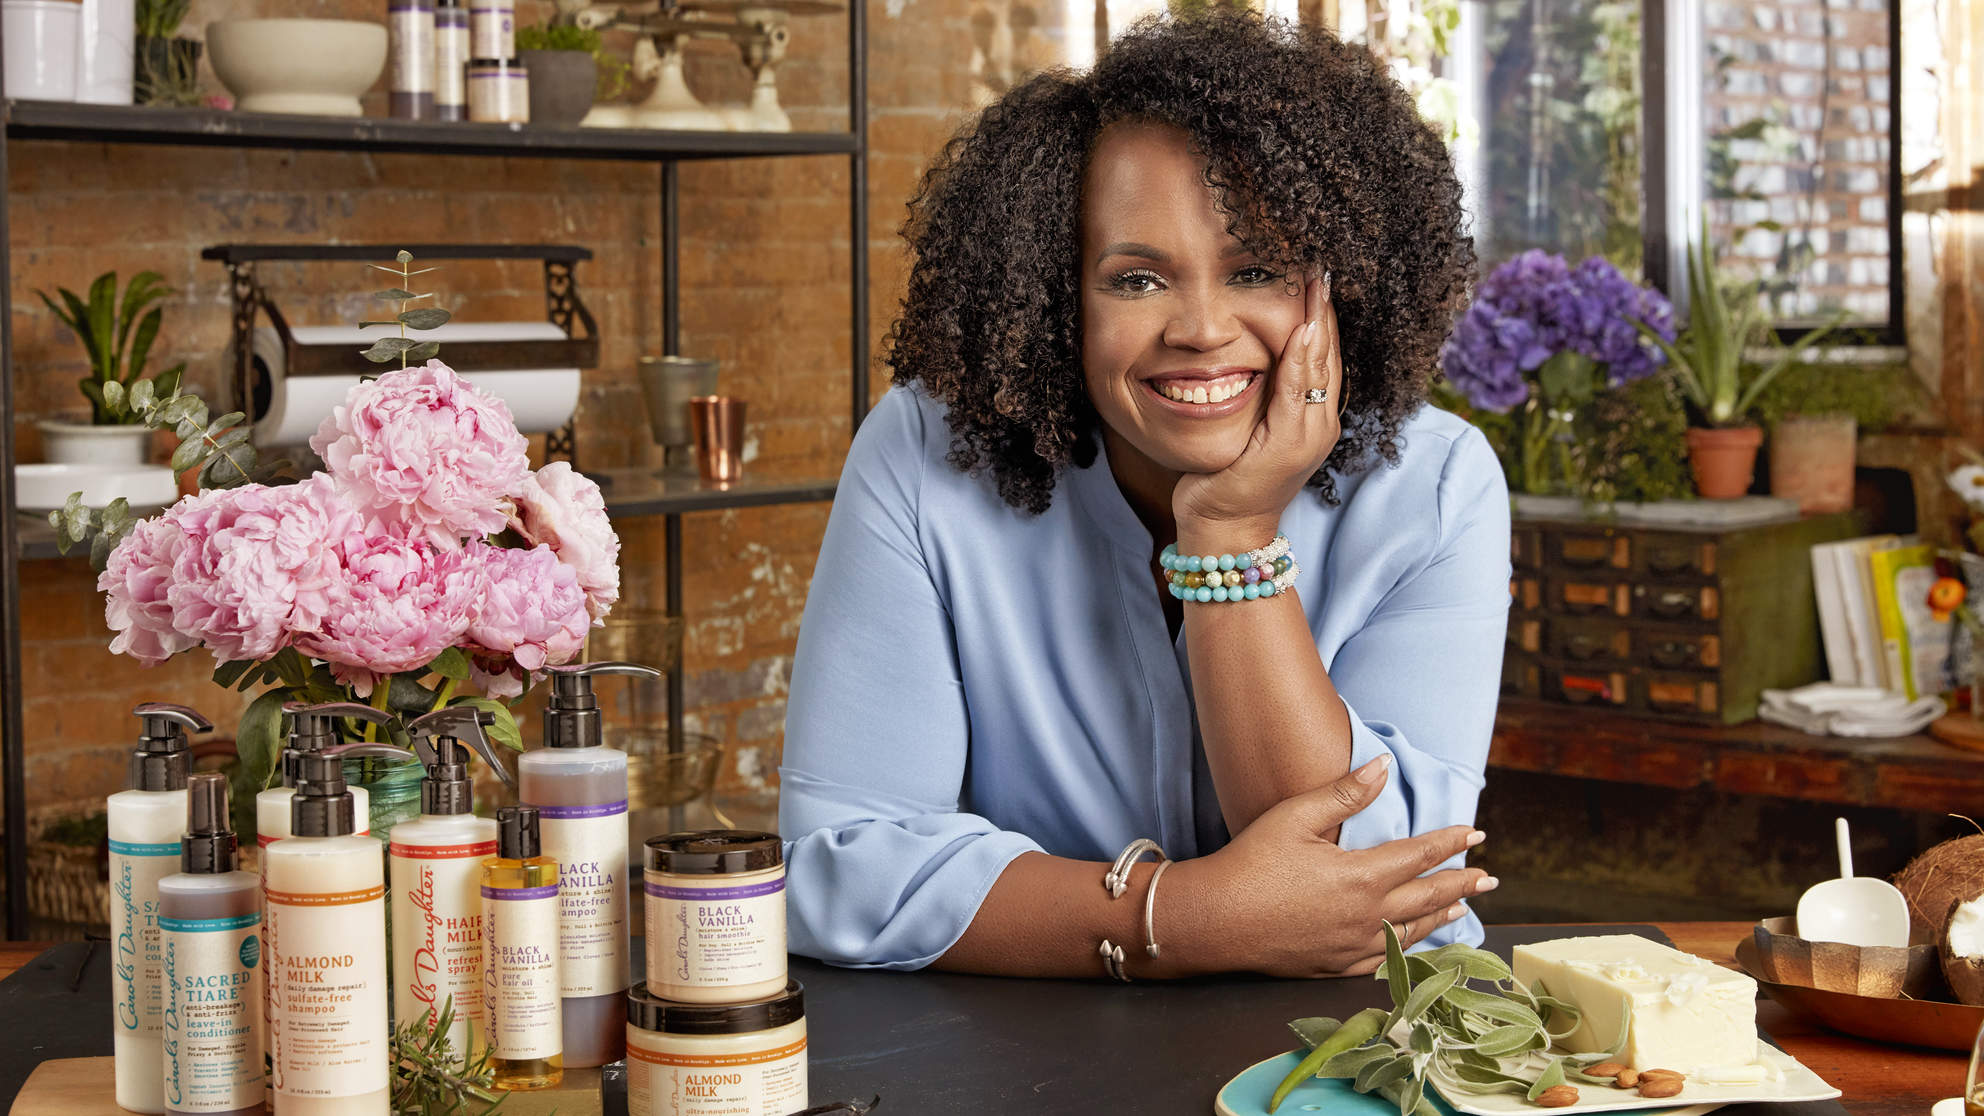 Founder of Beauty Line Carol's Daughter Shares Her Secret to Success as a Female Entrepreneur